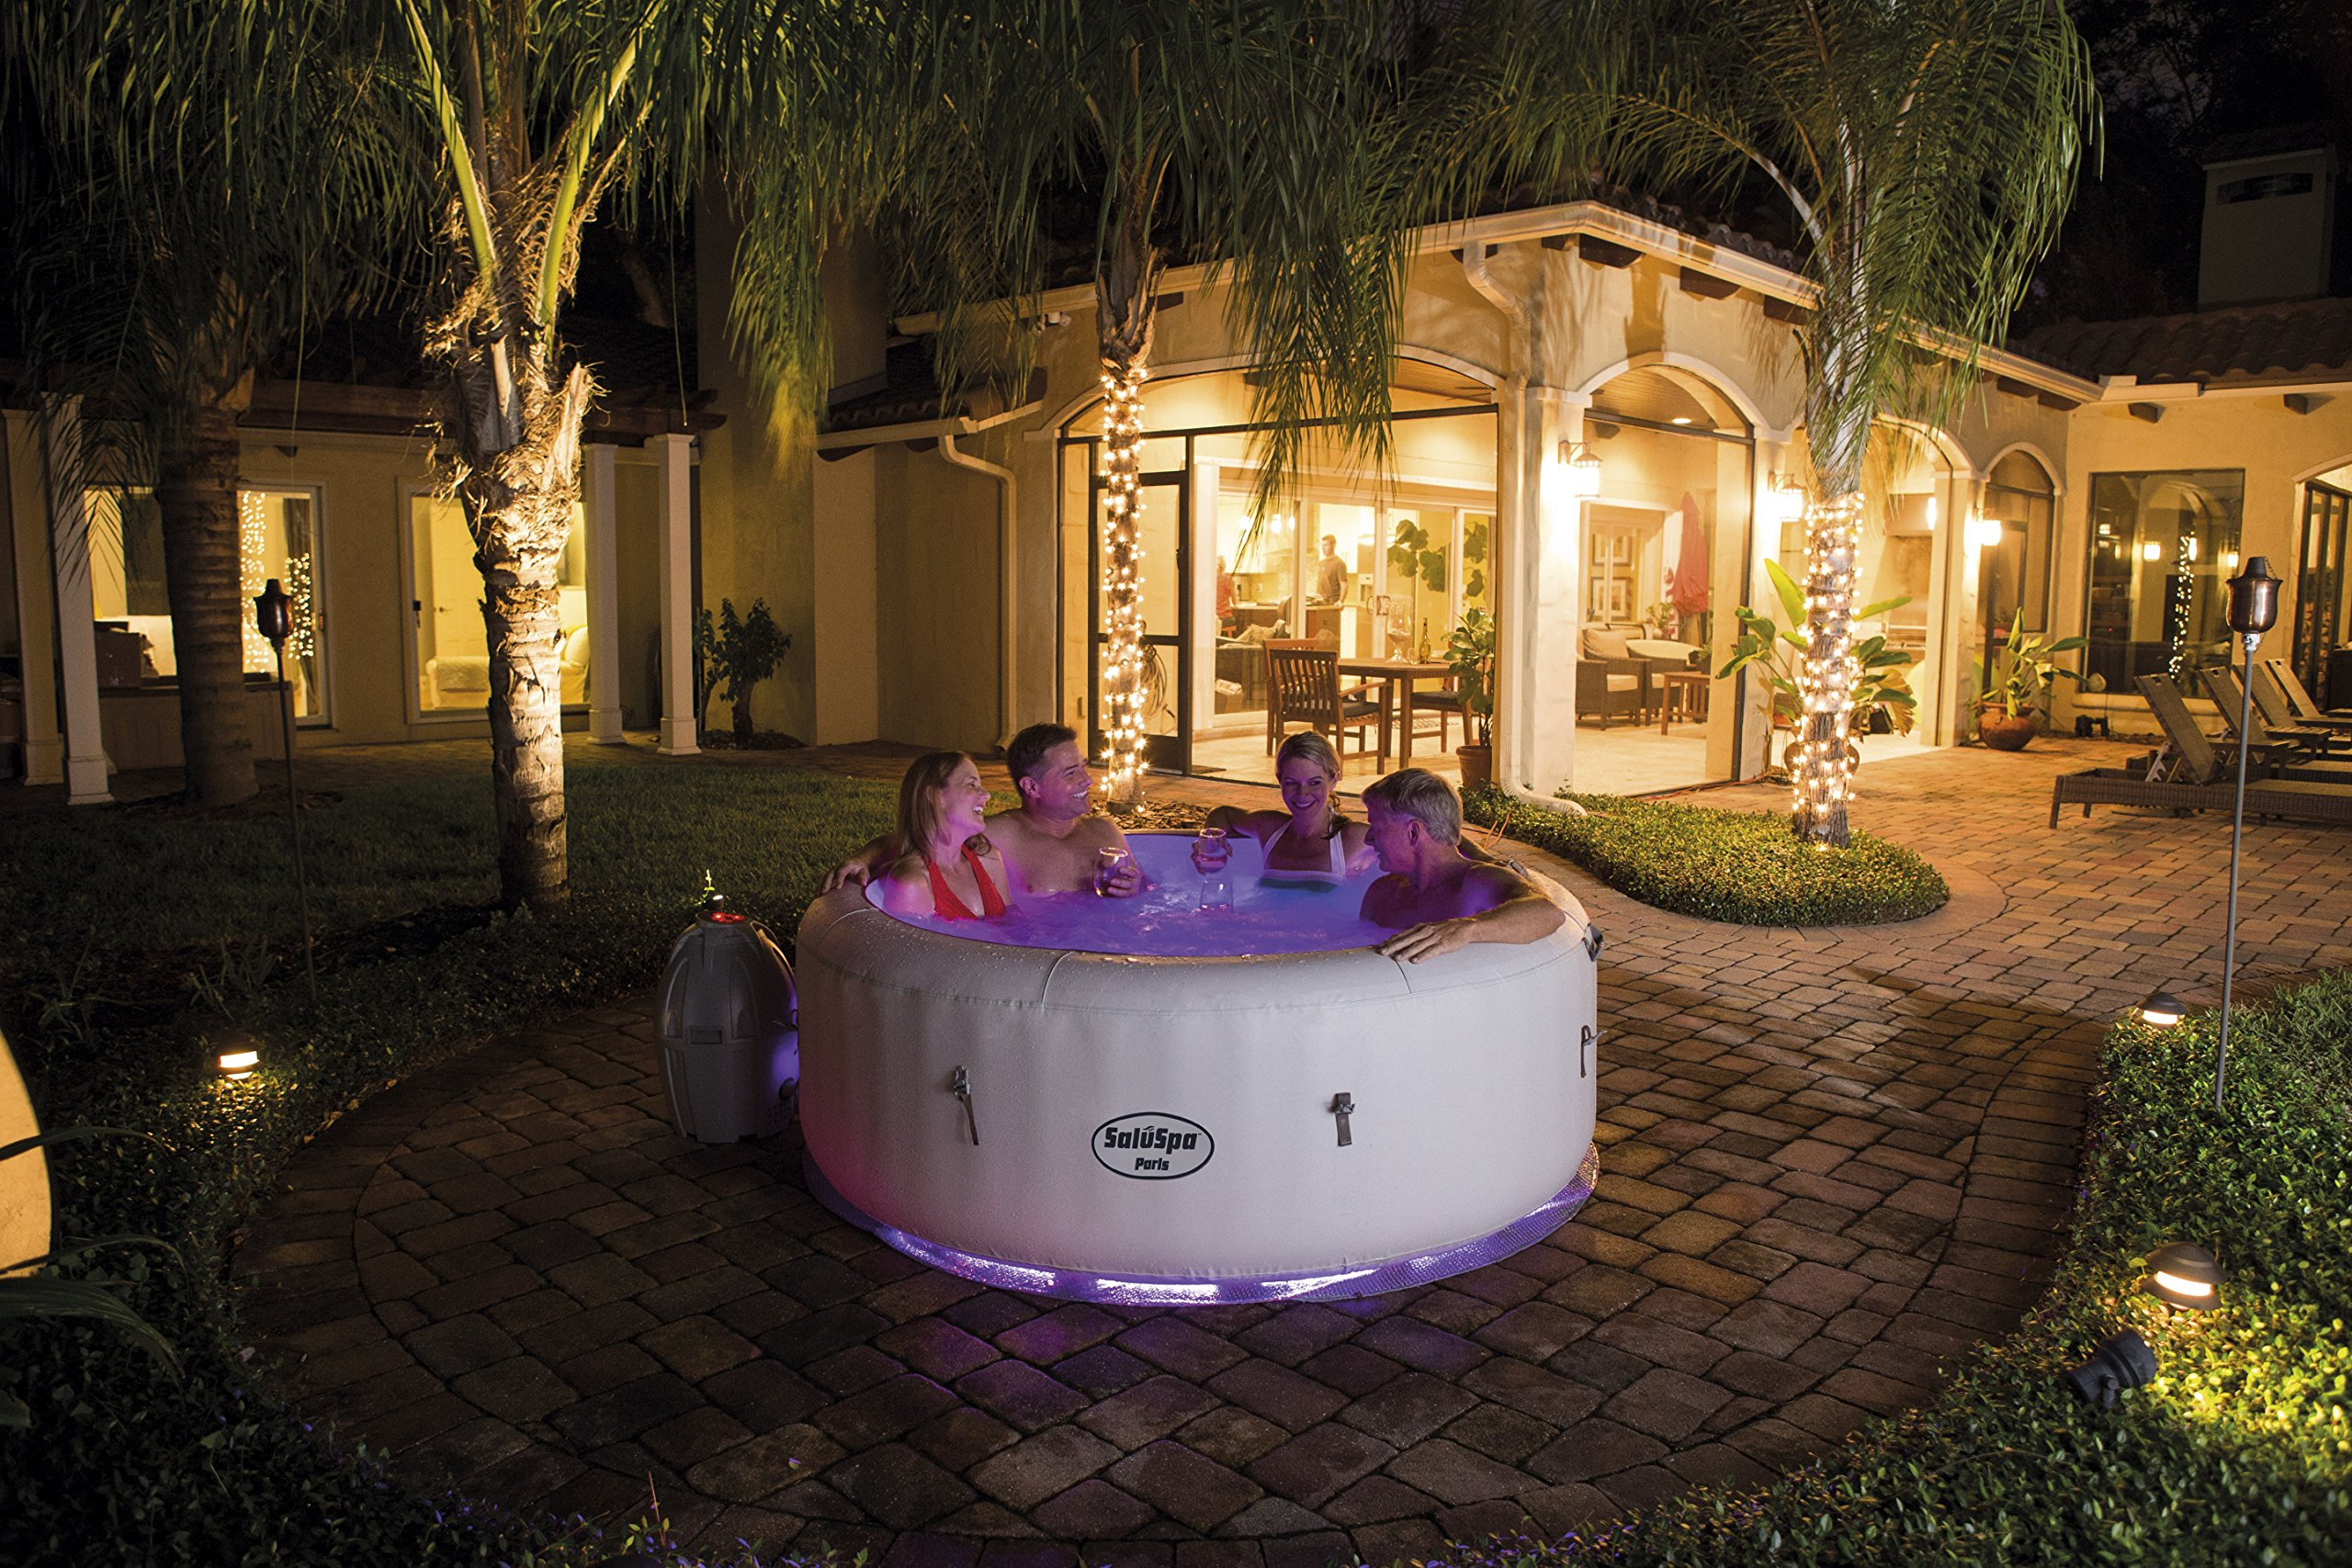 product hot round outdoor family tub buy sex spa soft detail